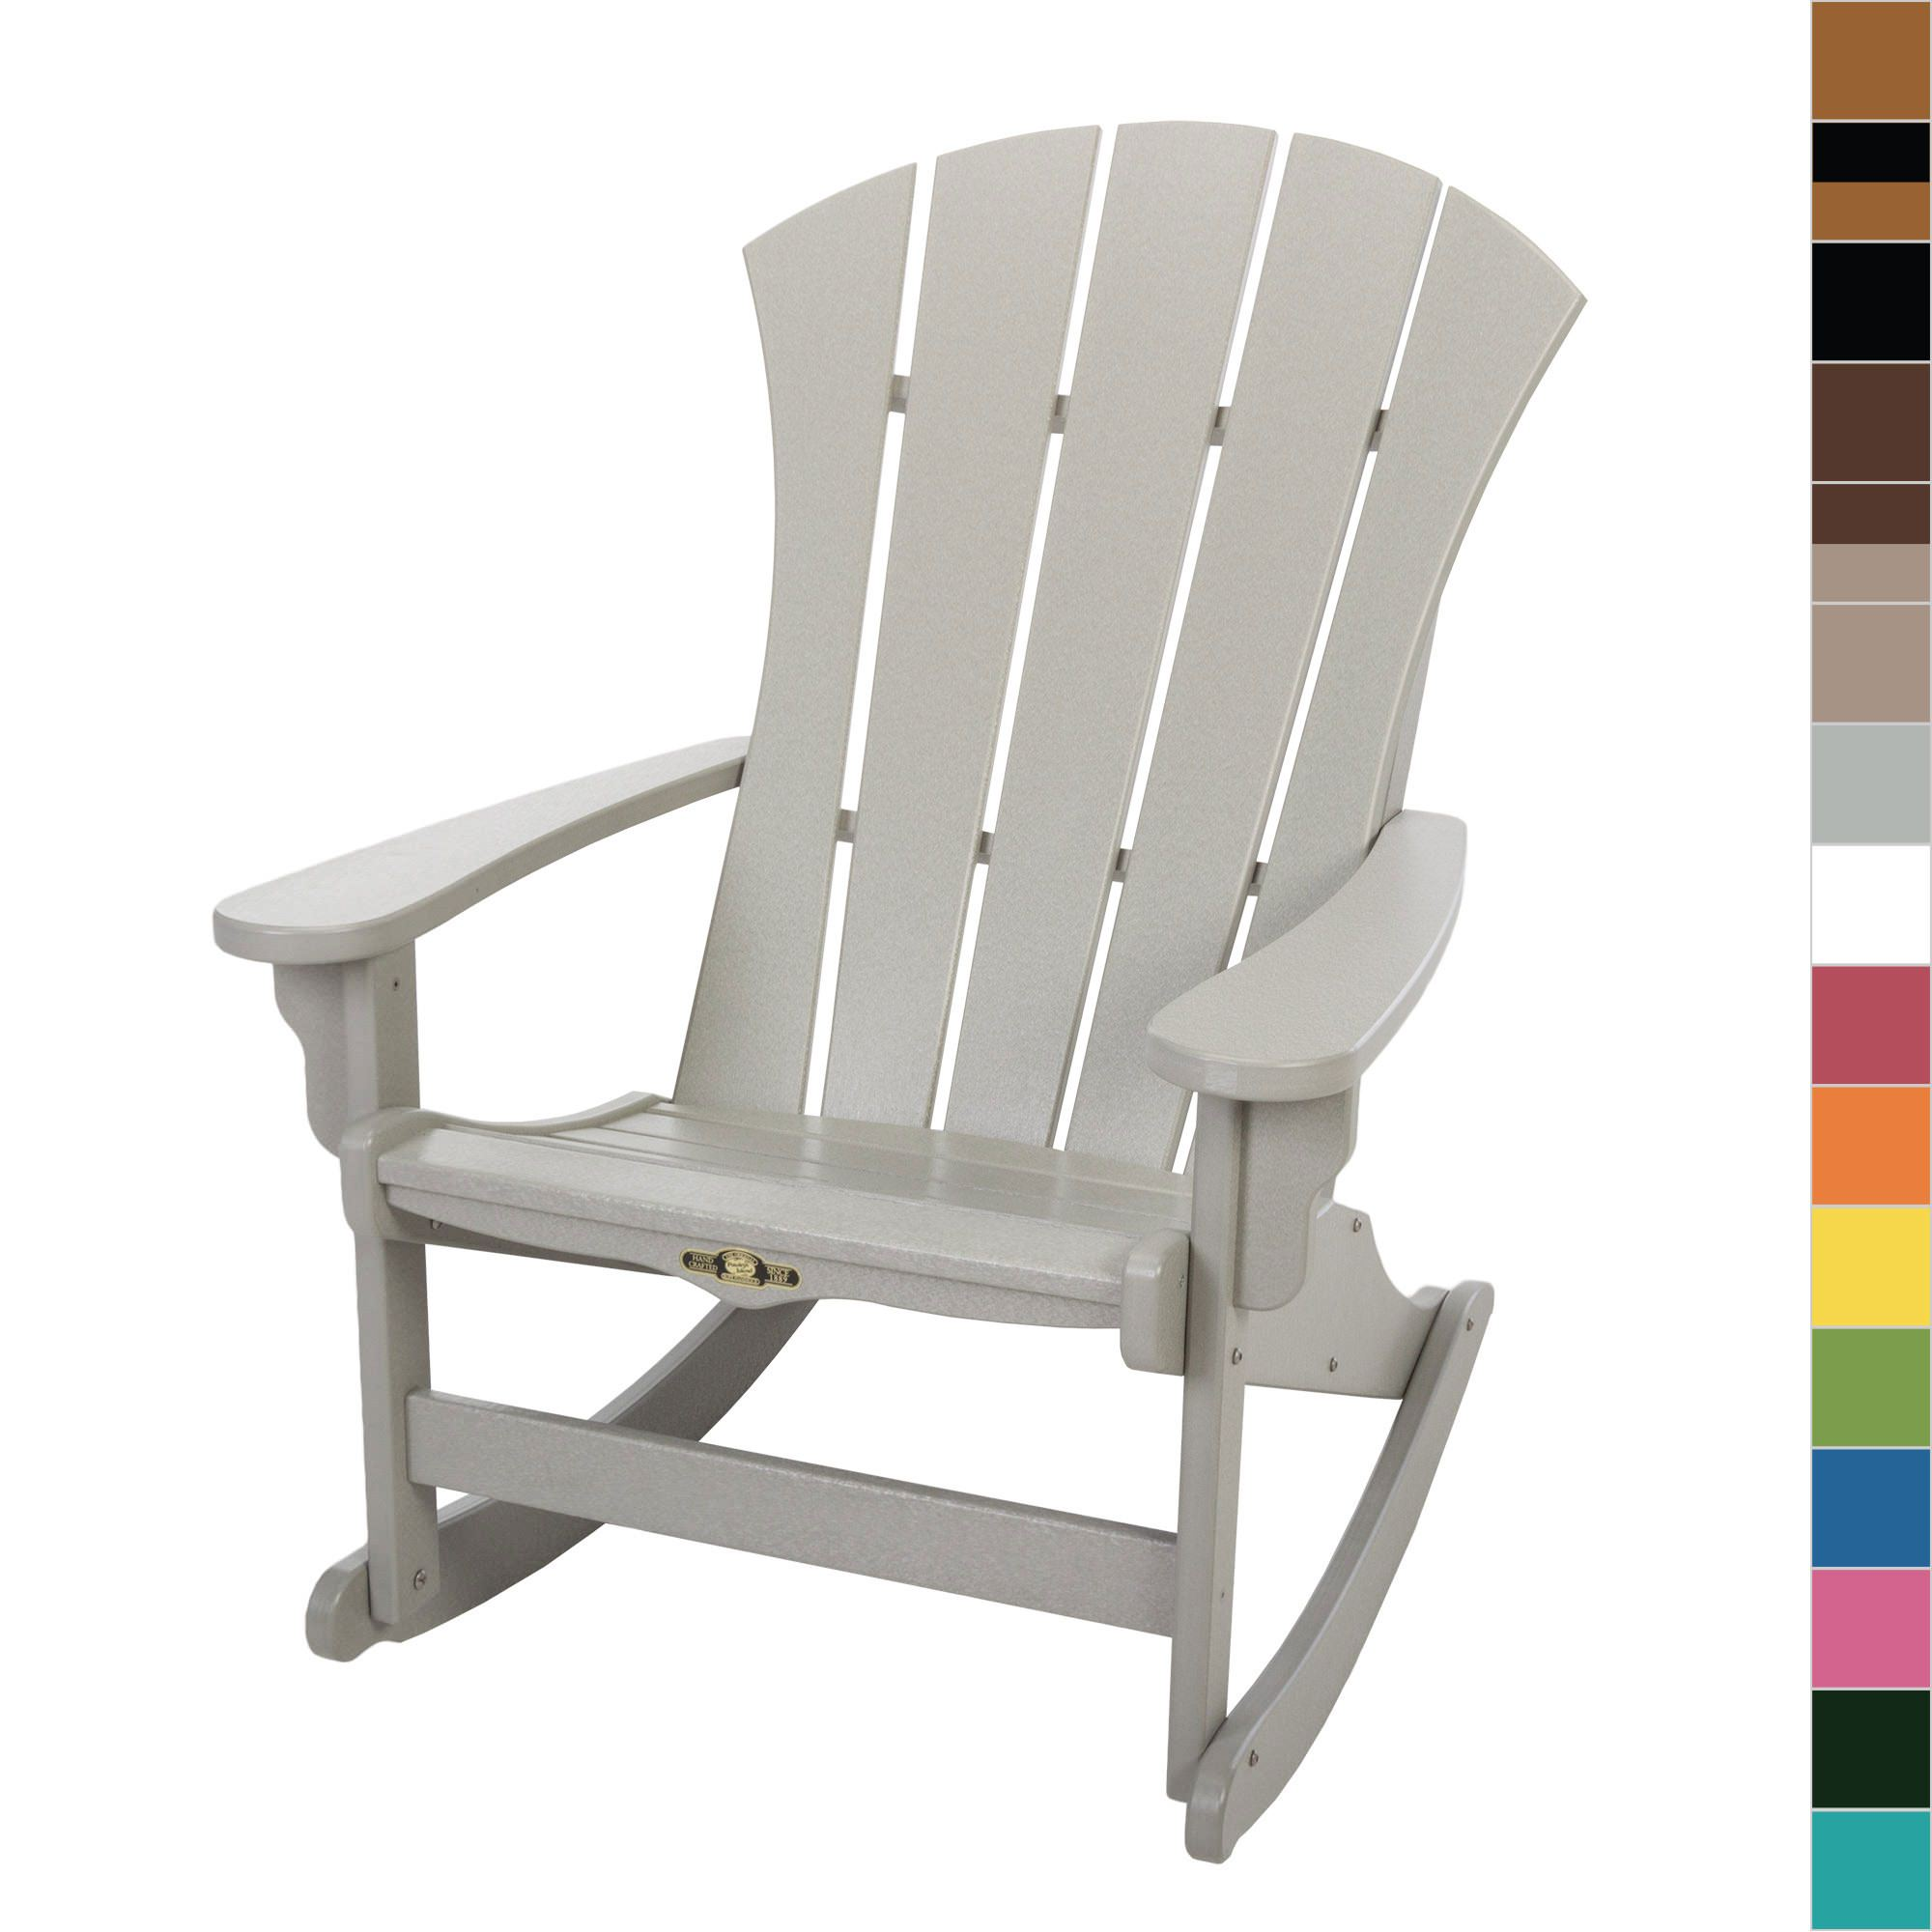 Island Chair Shop Durawood Sunrise Adirondack Rockers On Sale